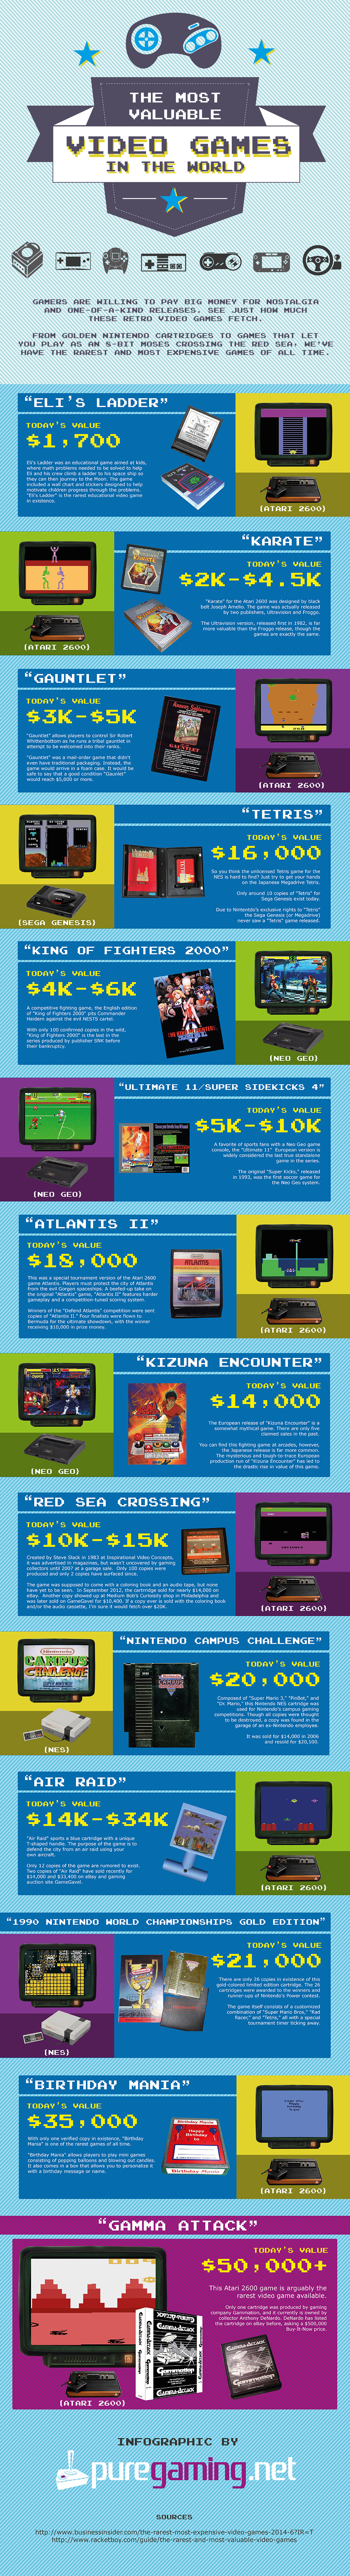 most-valuable-video-games-in-the-world